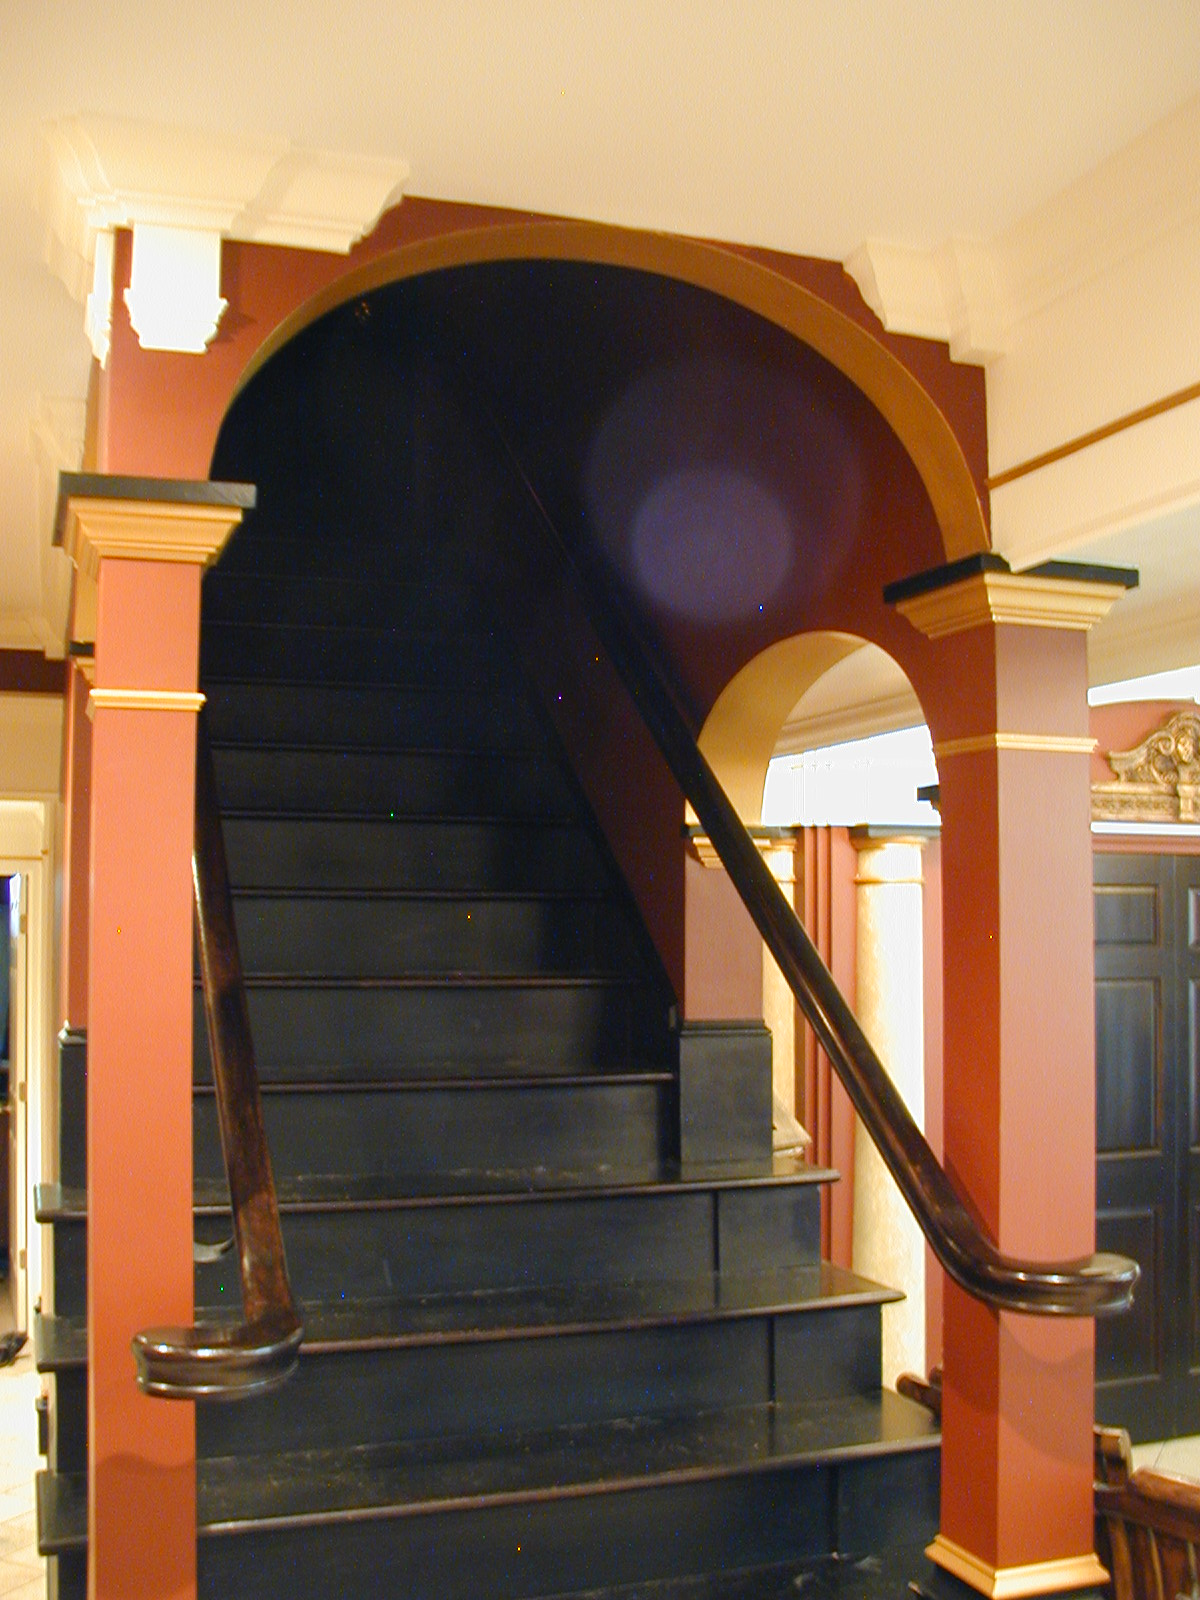 Another View of Staircase